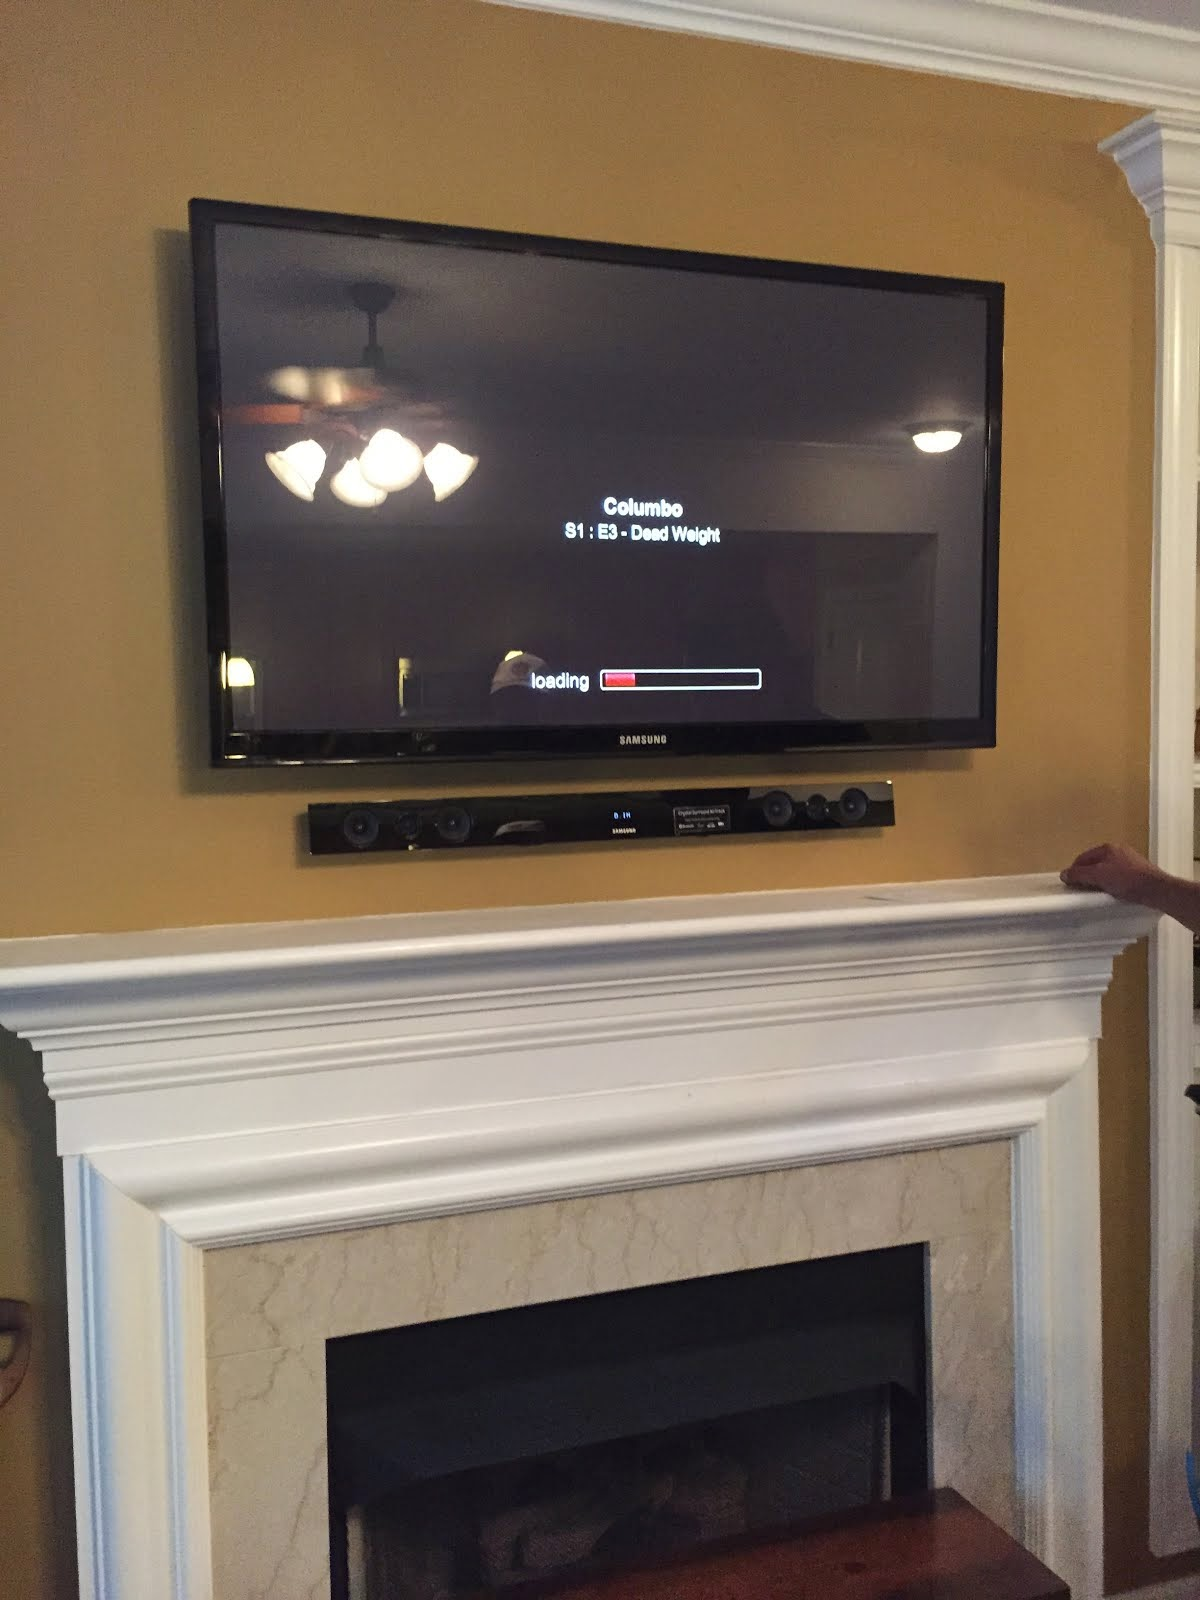 Tv Wall Mount For Patio: TV Wall Mounting Charlotte NC: Charlotte TV Wall Mounting